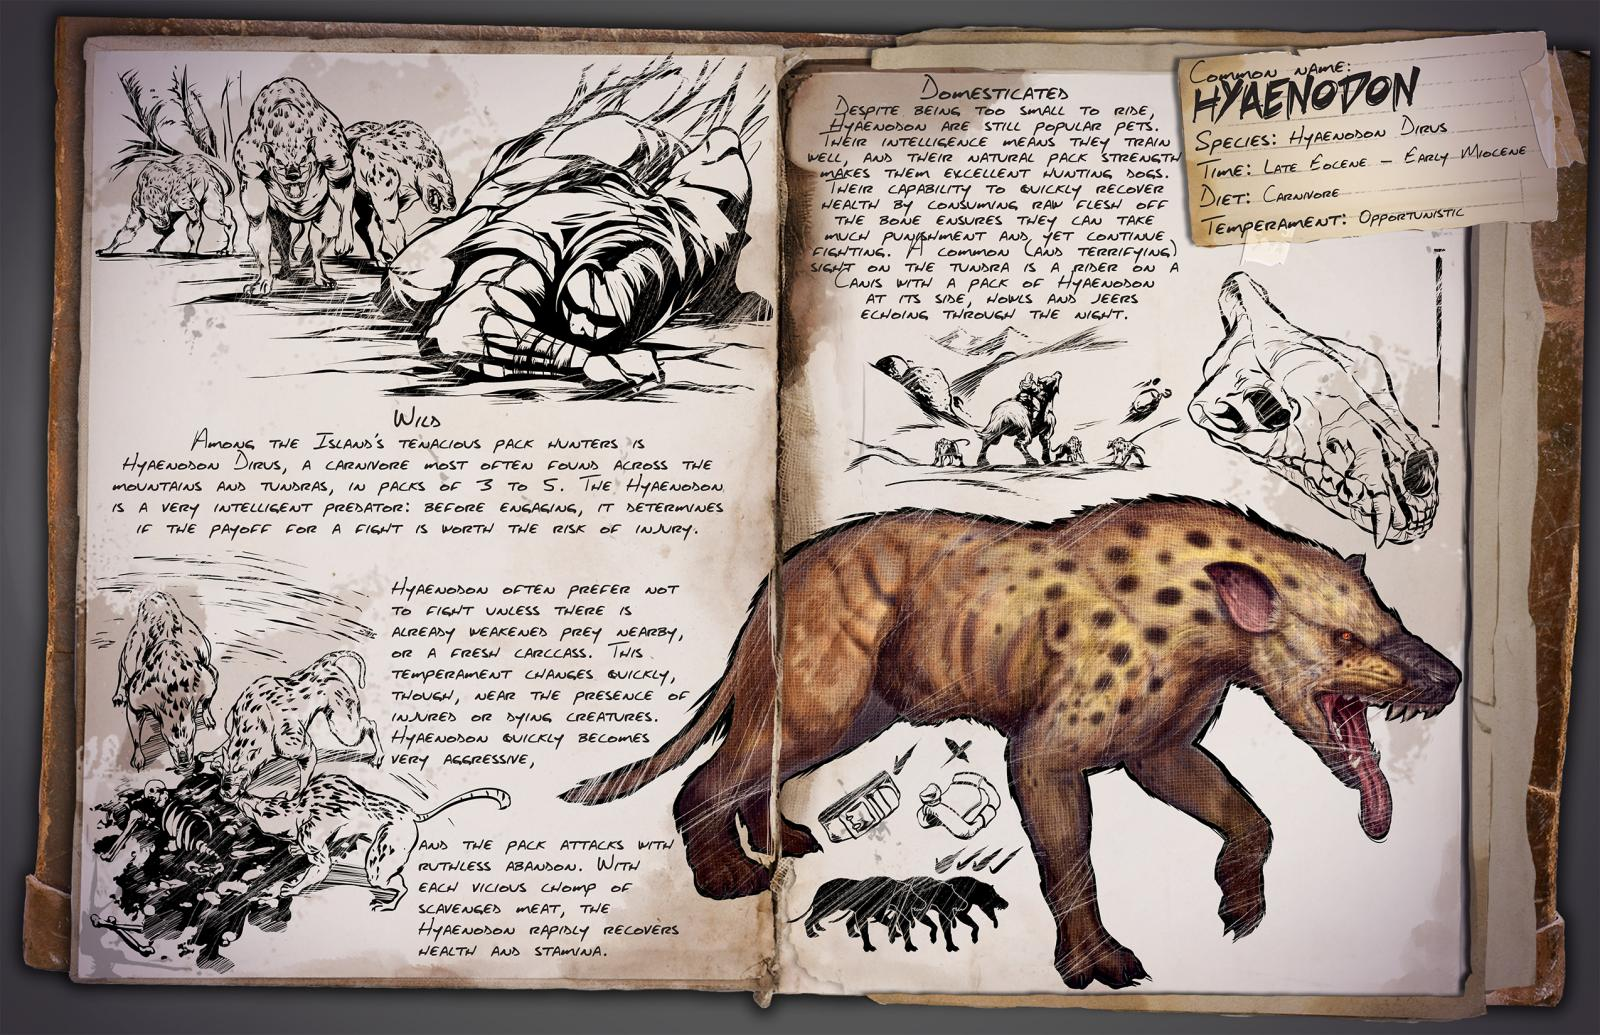 Patch 258 hyaenodon megatherium megalania hesperornis hyaenodon dirus a carnivore most often found across the mountains and tundras in packs of 3 to 6 the hyaenodon is a very intelligent predator malvernweather Images